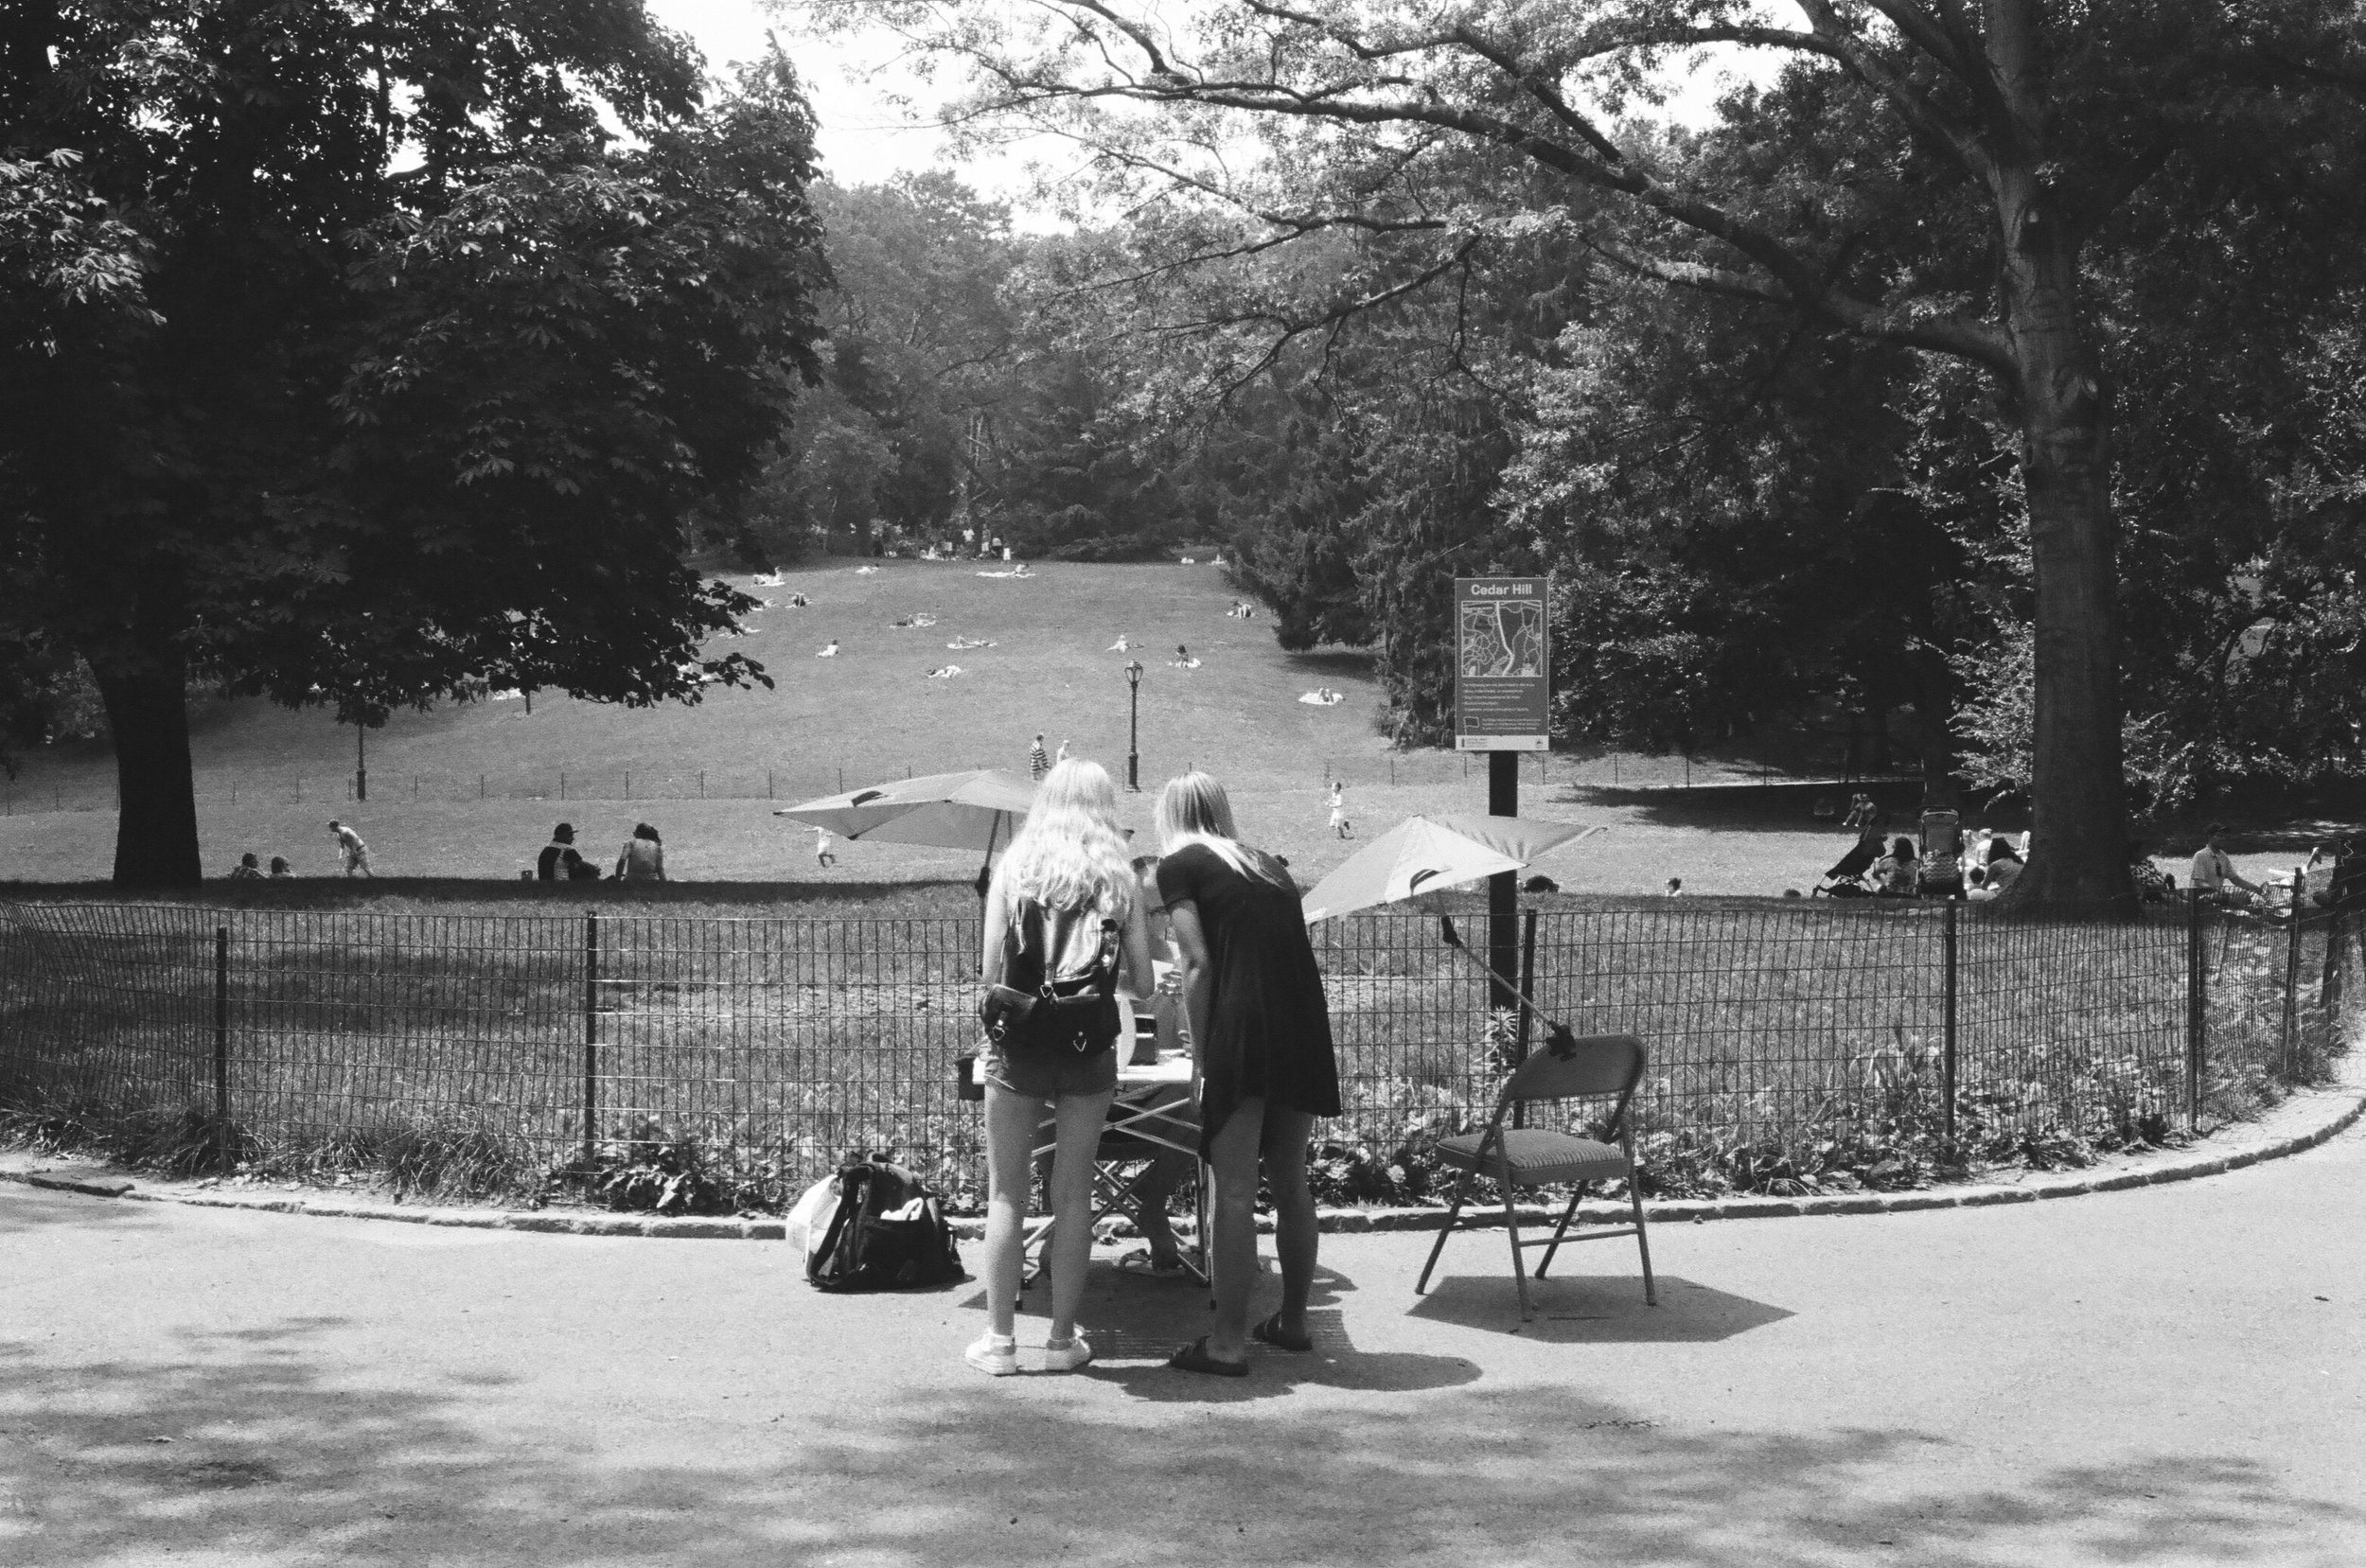 central park. 2016 35mm